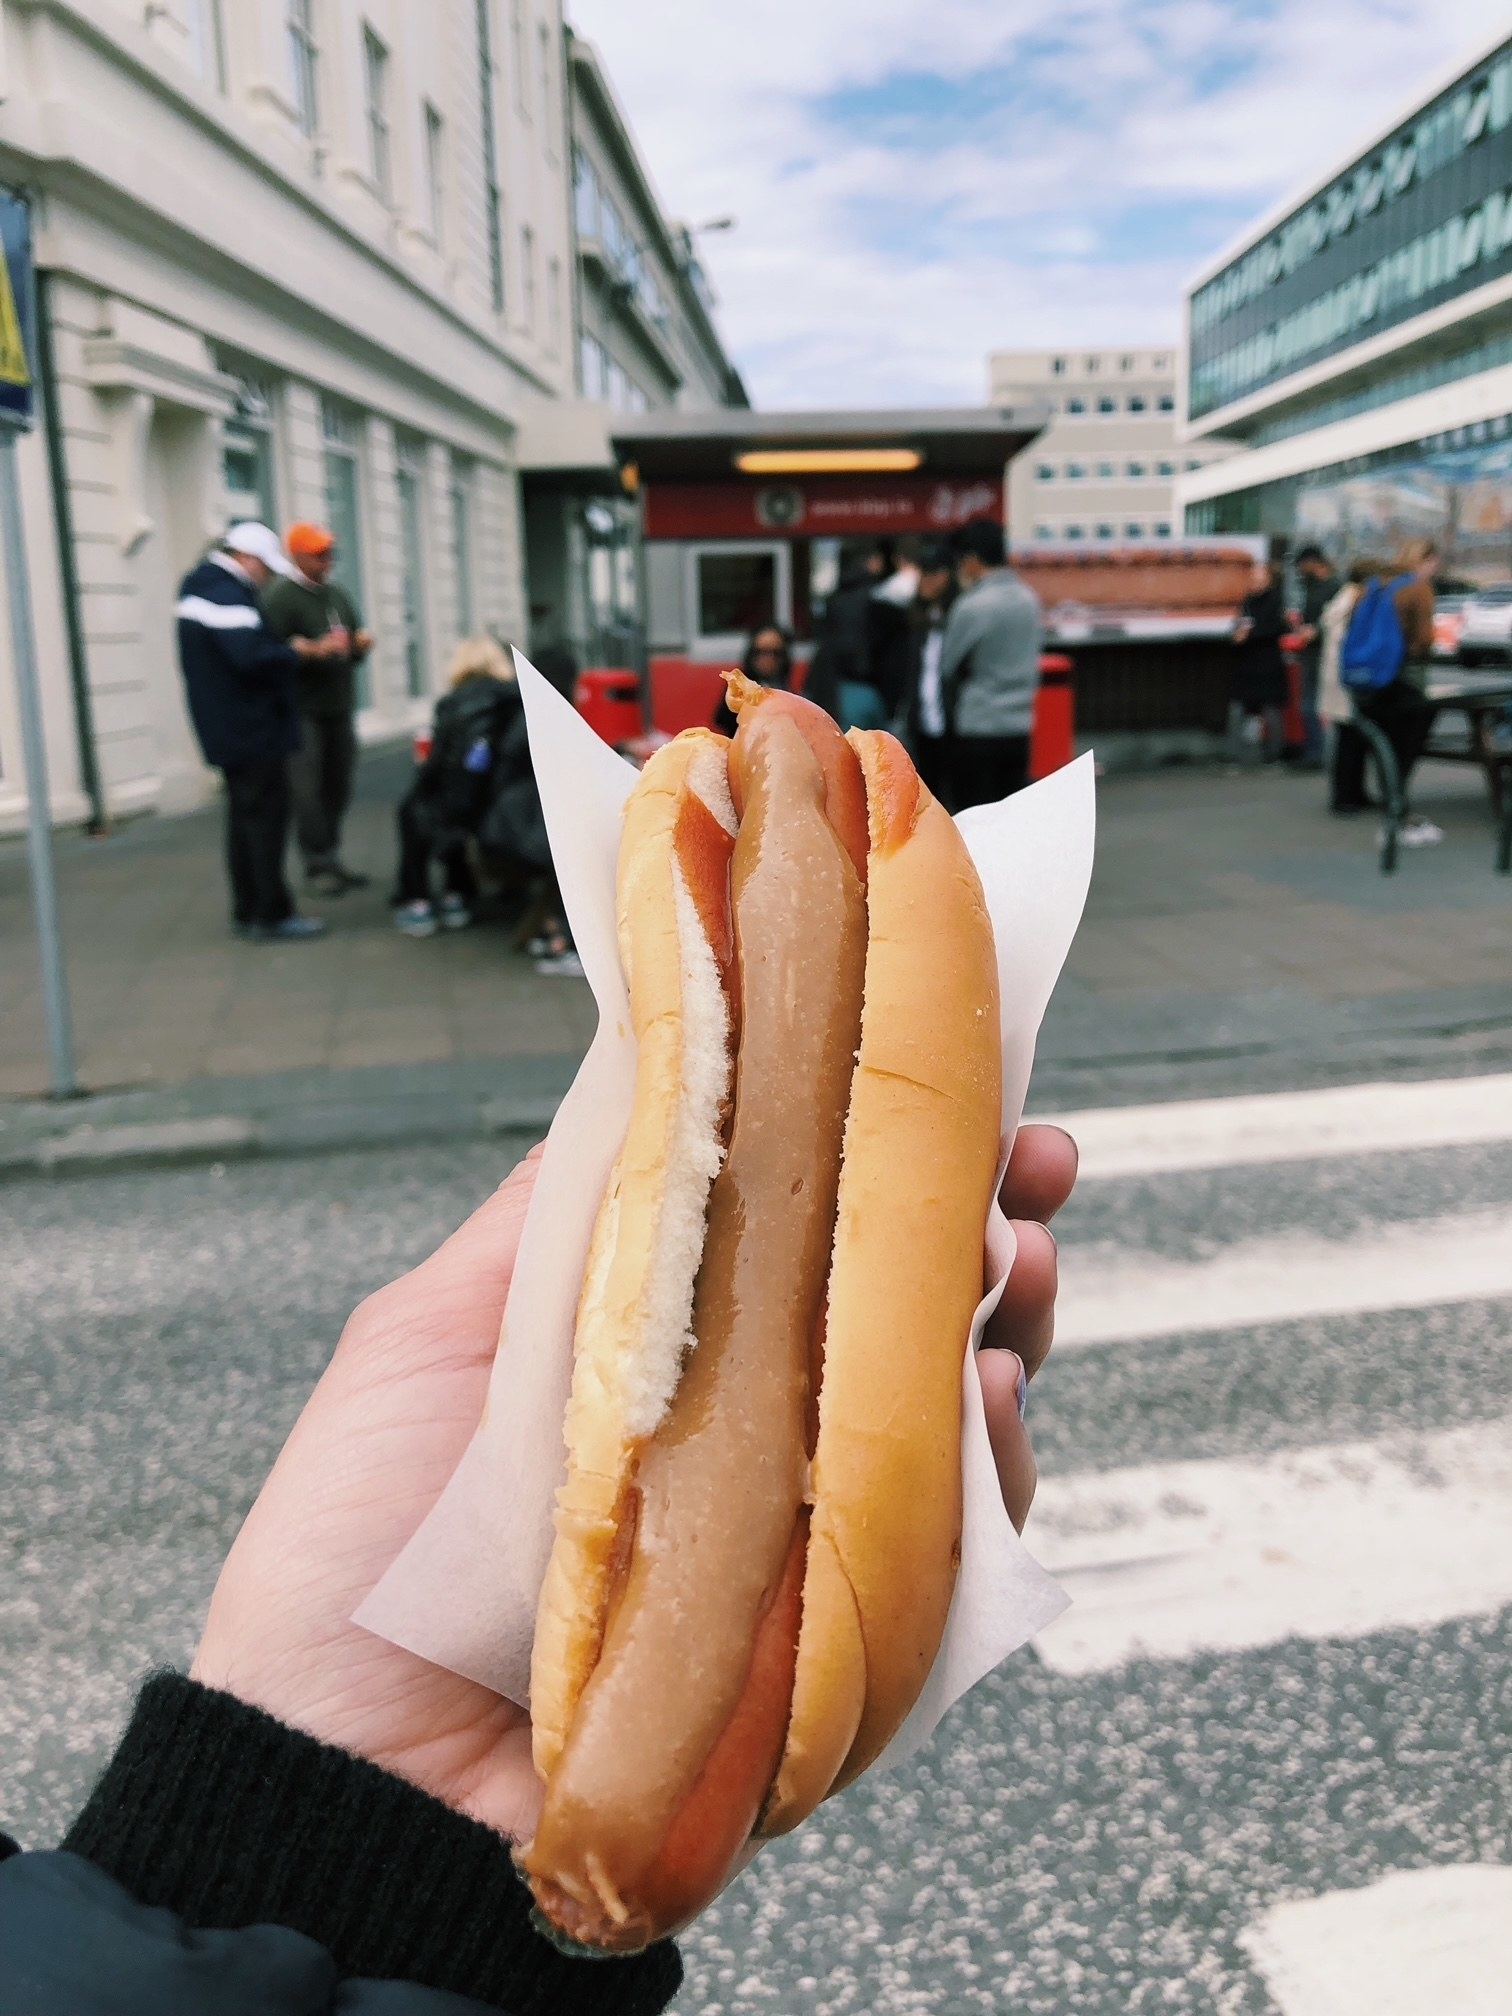 A hot dog from a street cart in Reykjavik